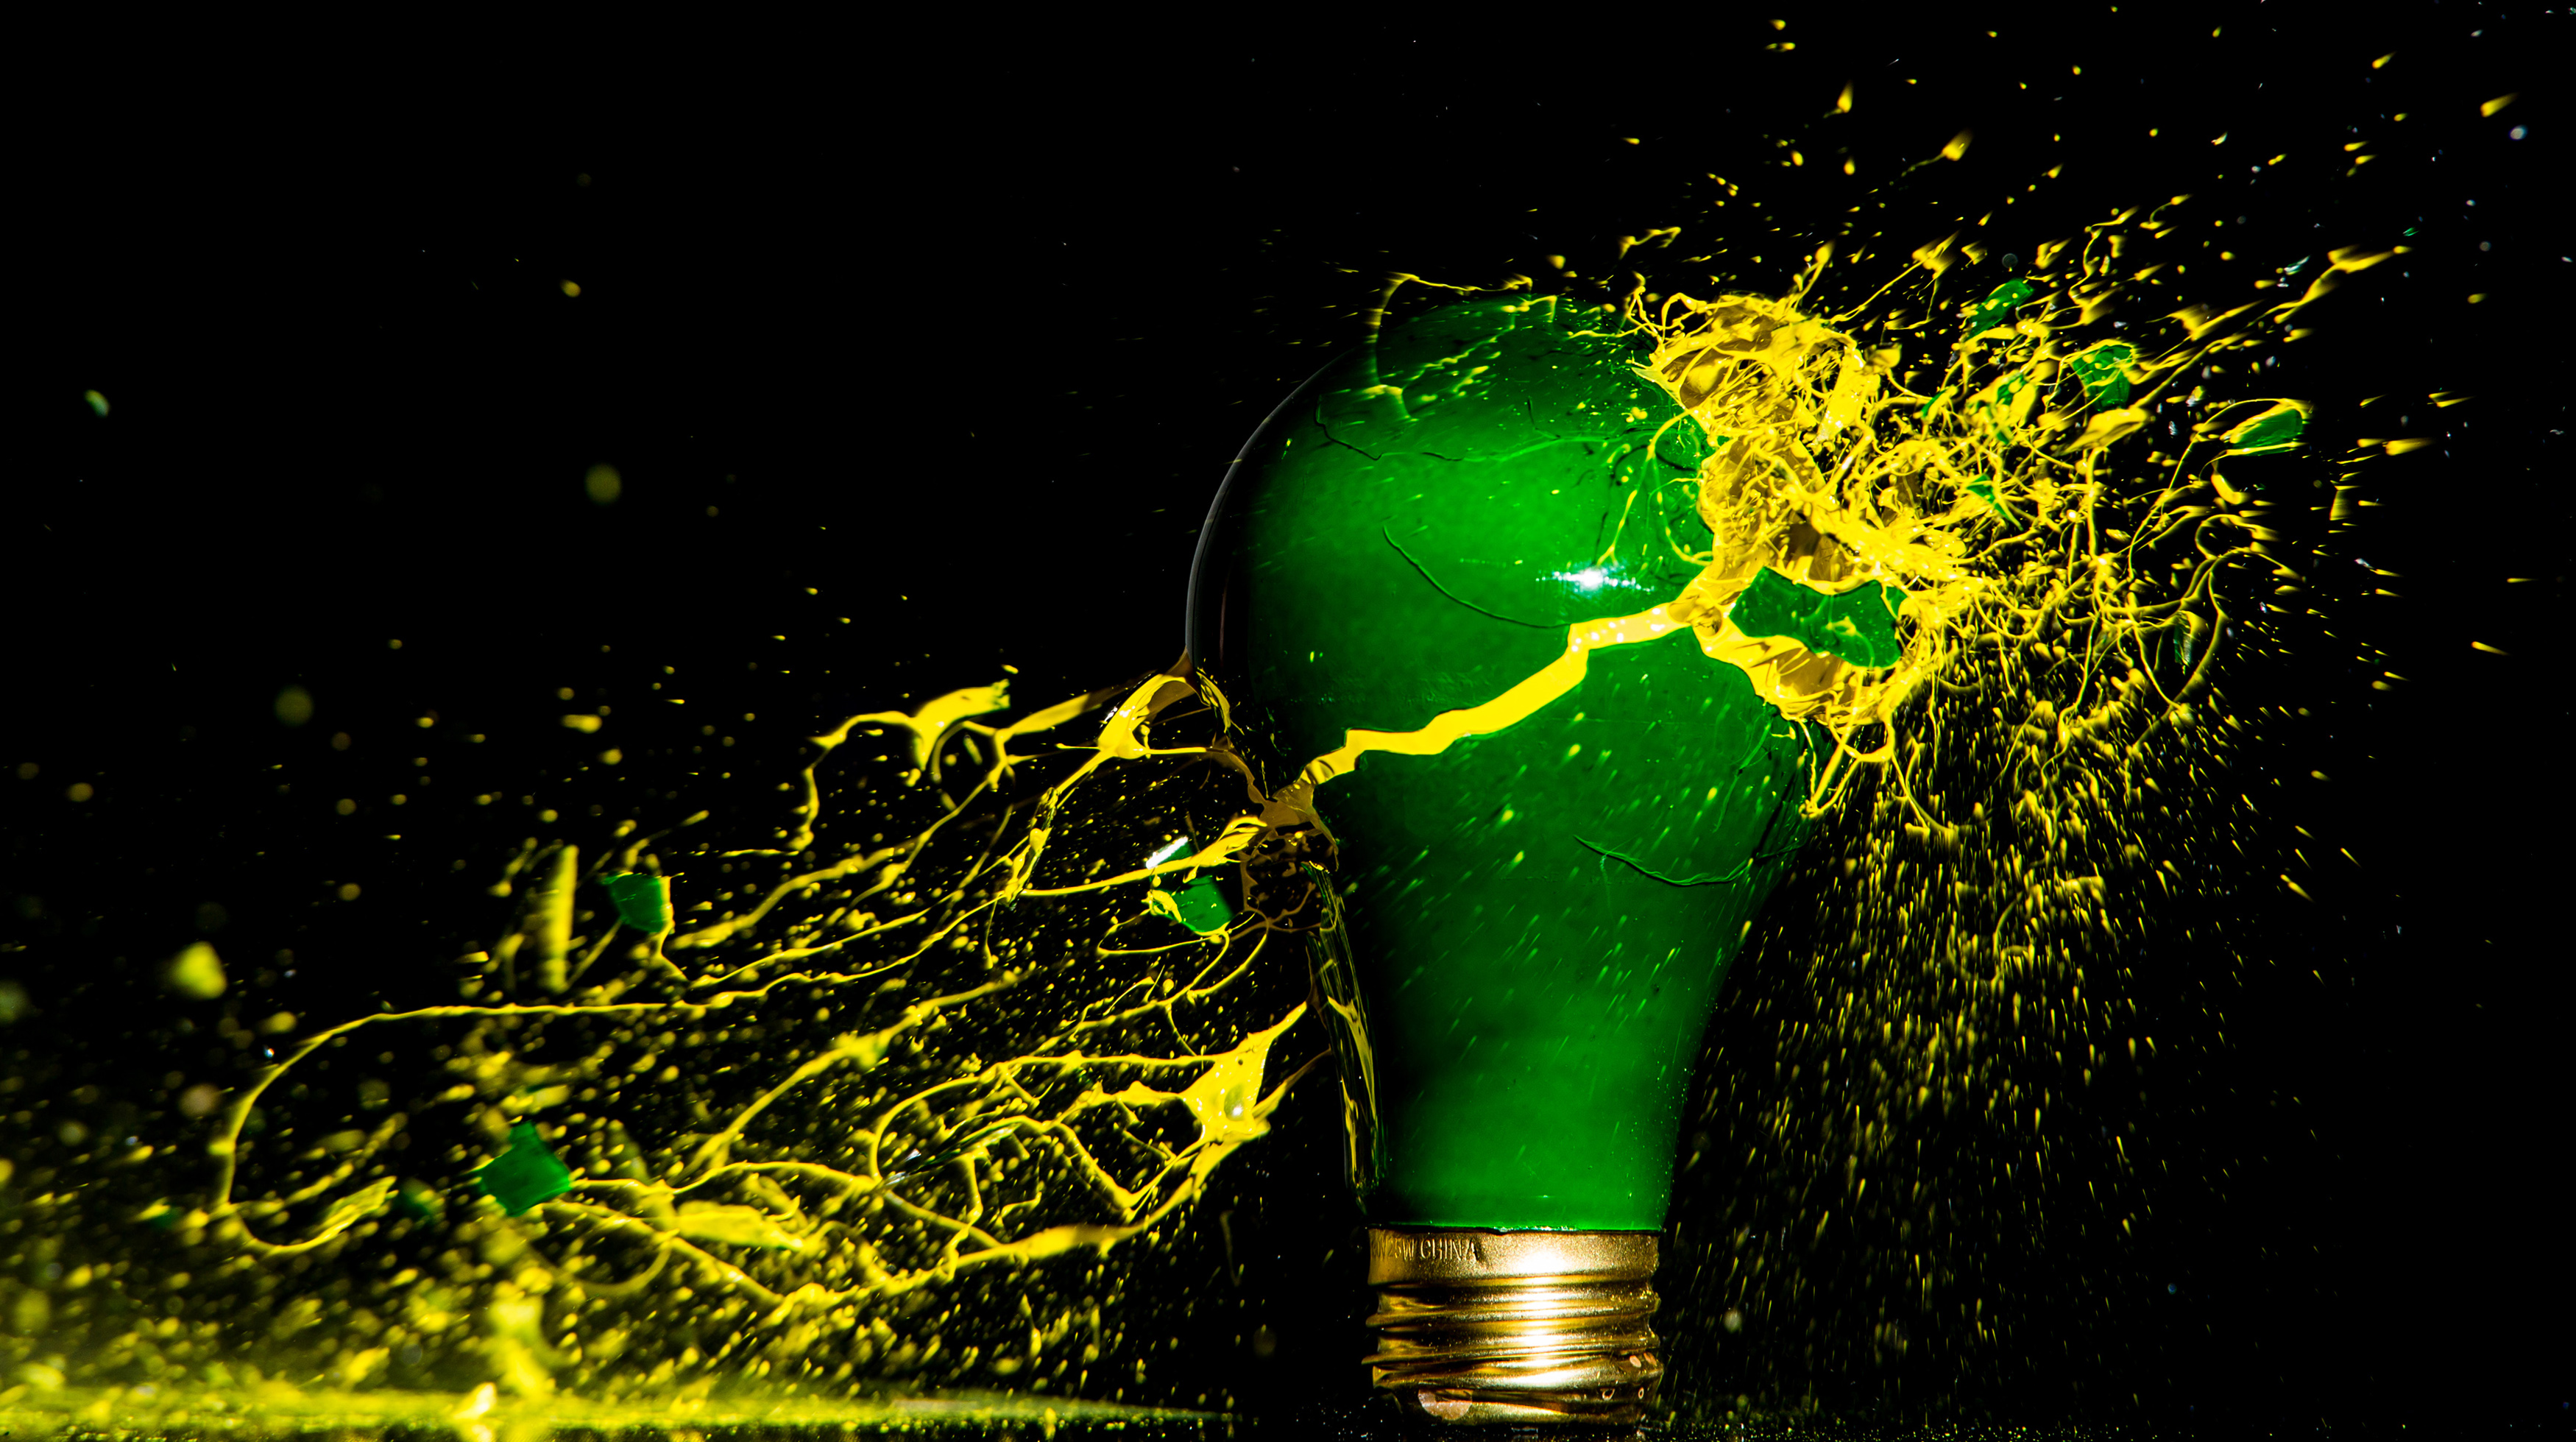 200 Beautiful Bulb Pictures  Pexels  Free Stock Photos